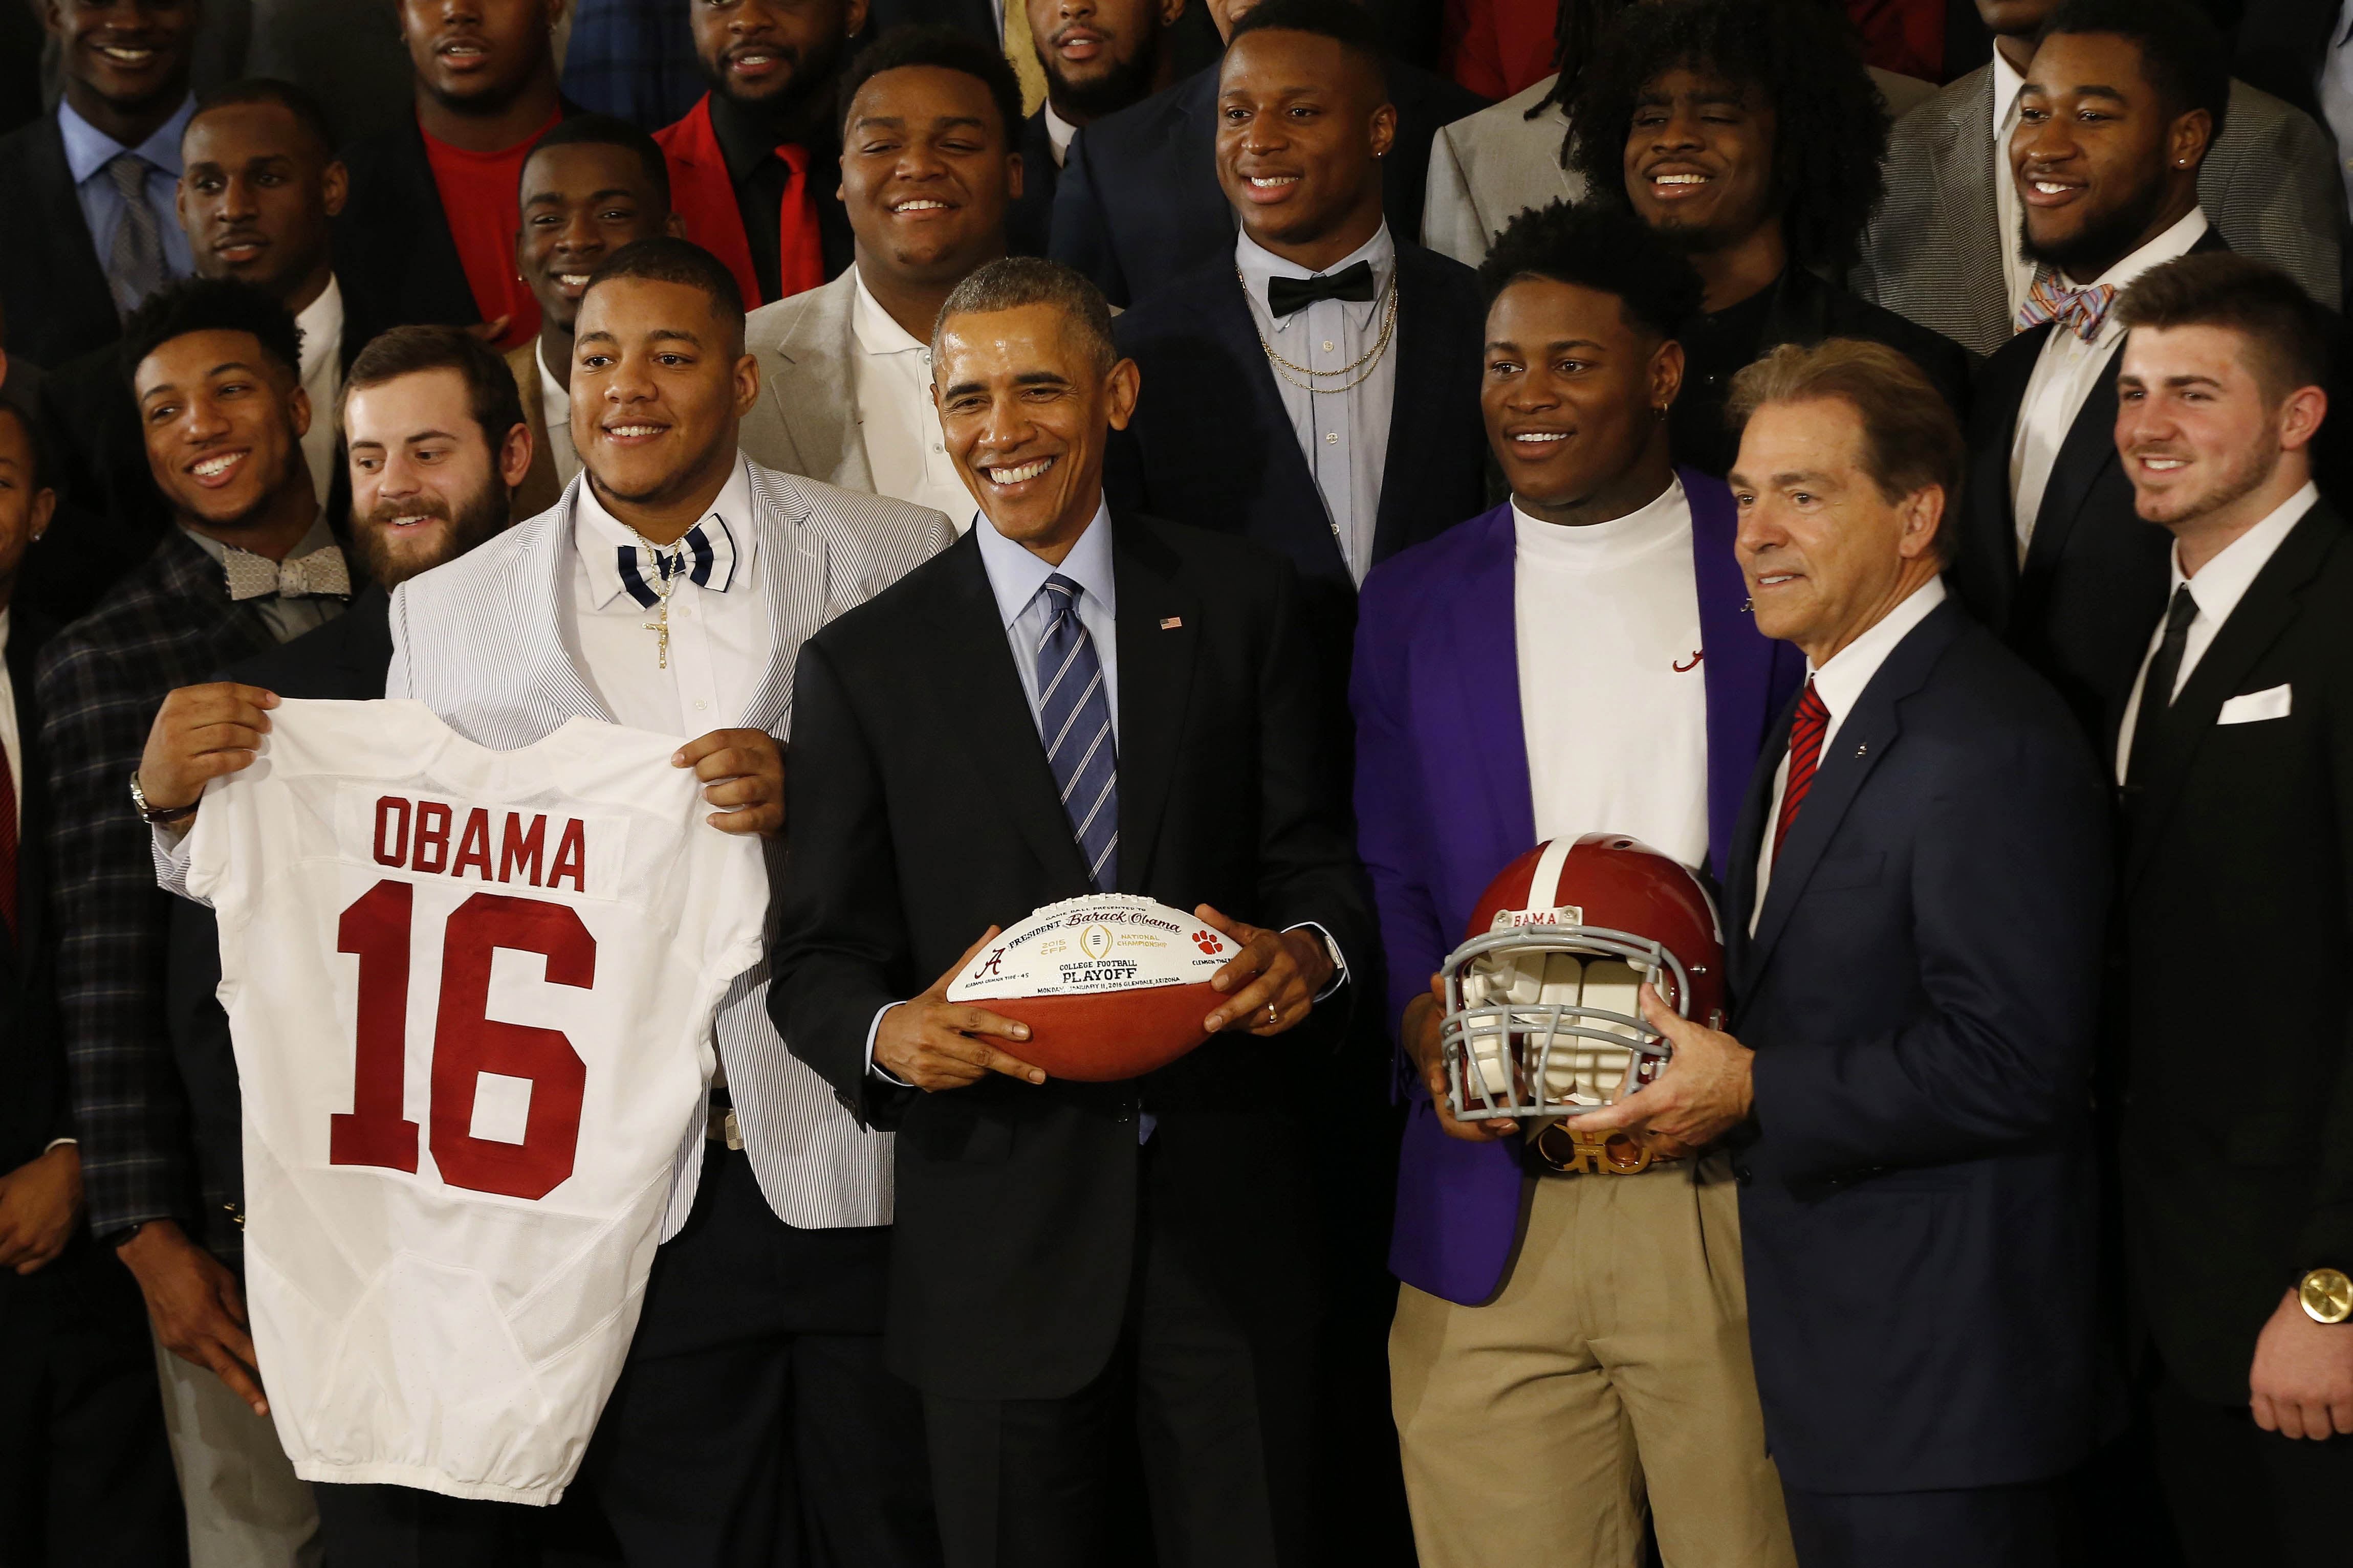 Another Alabama title? THANKS OBAMA